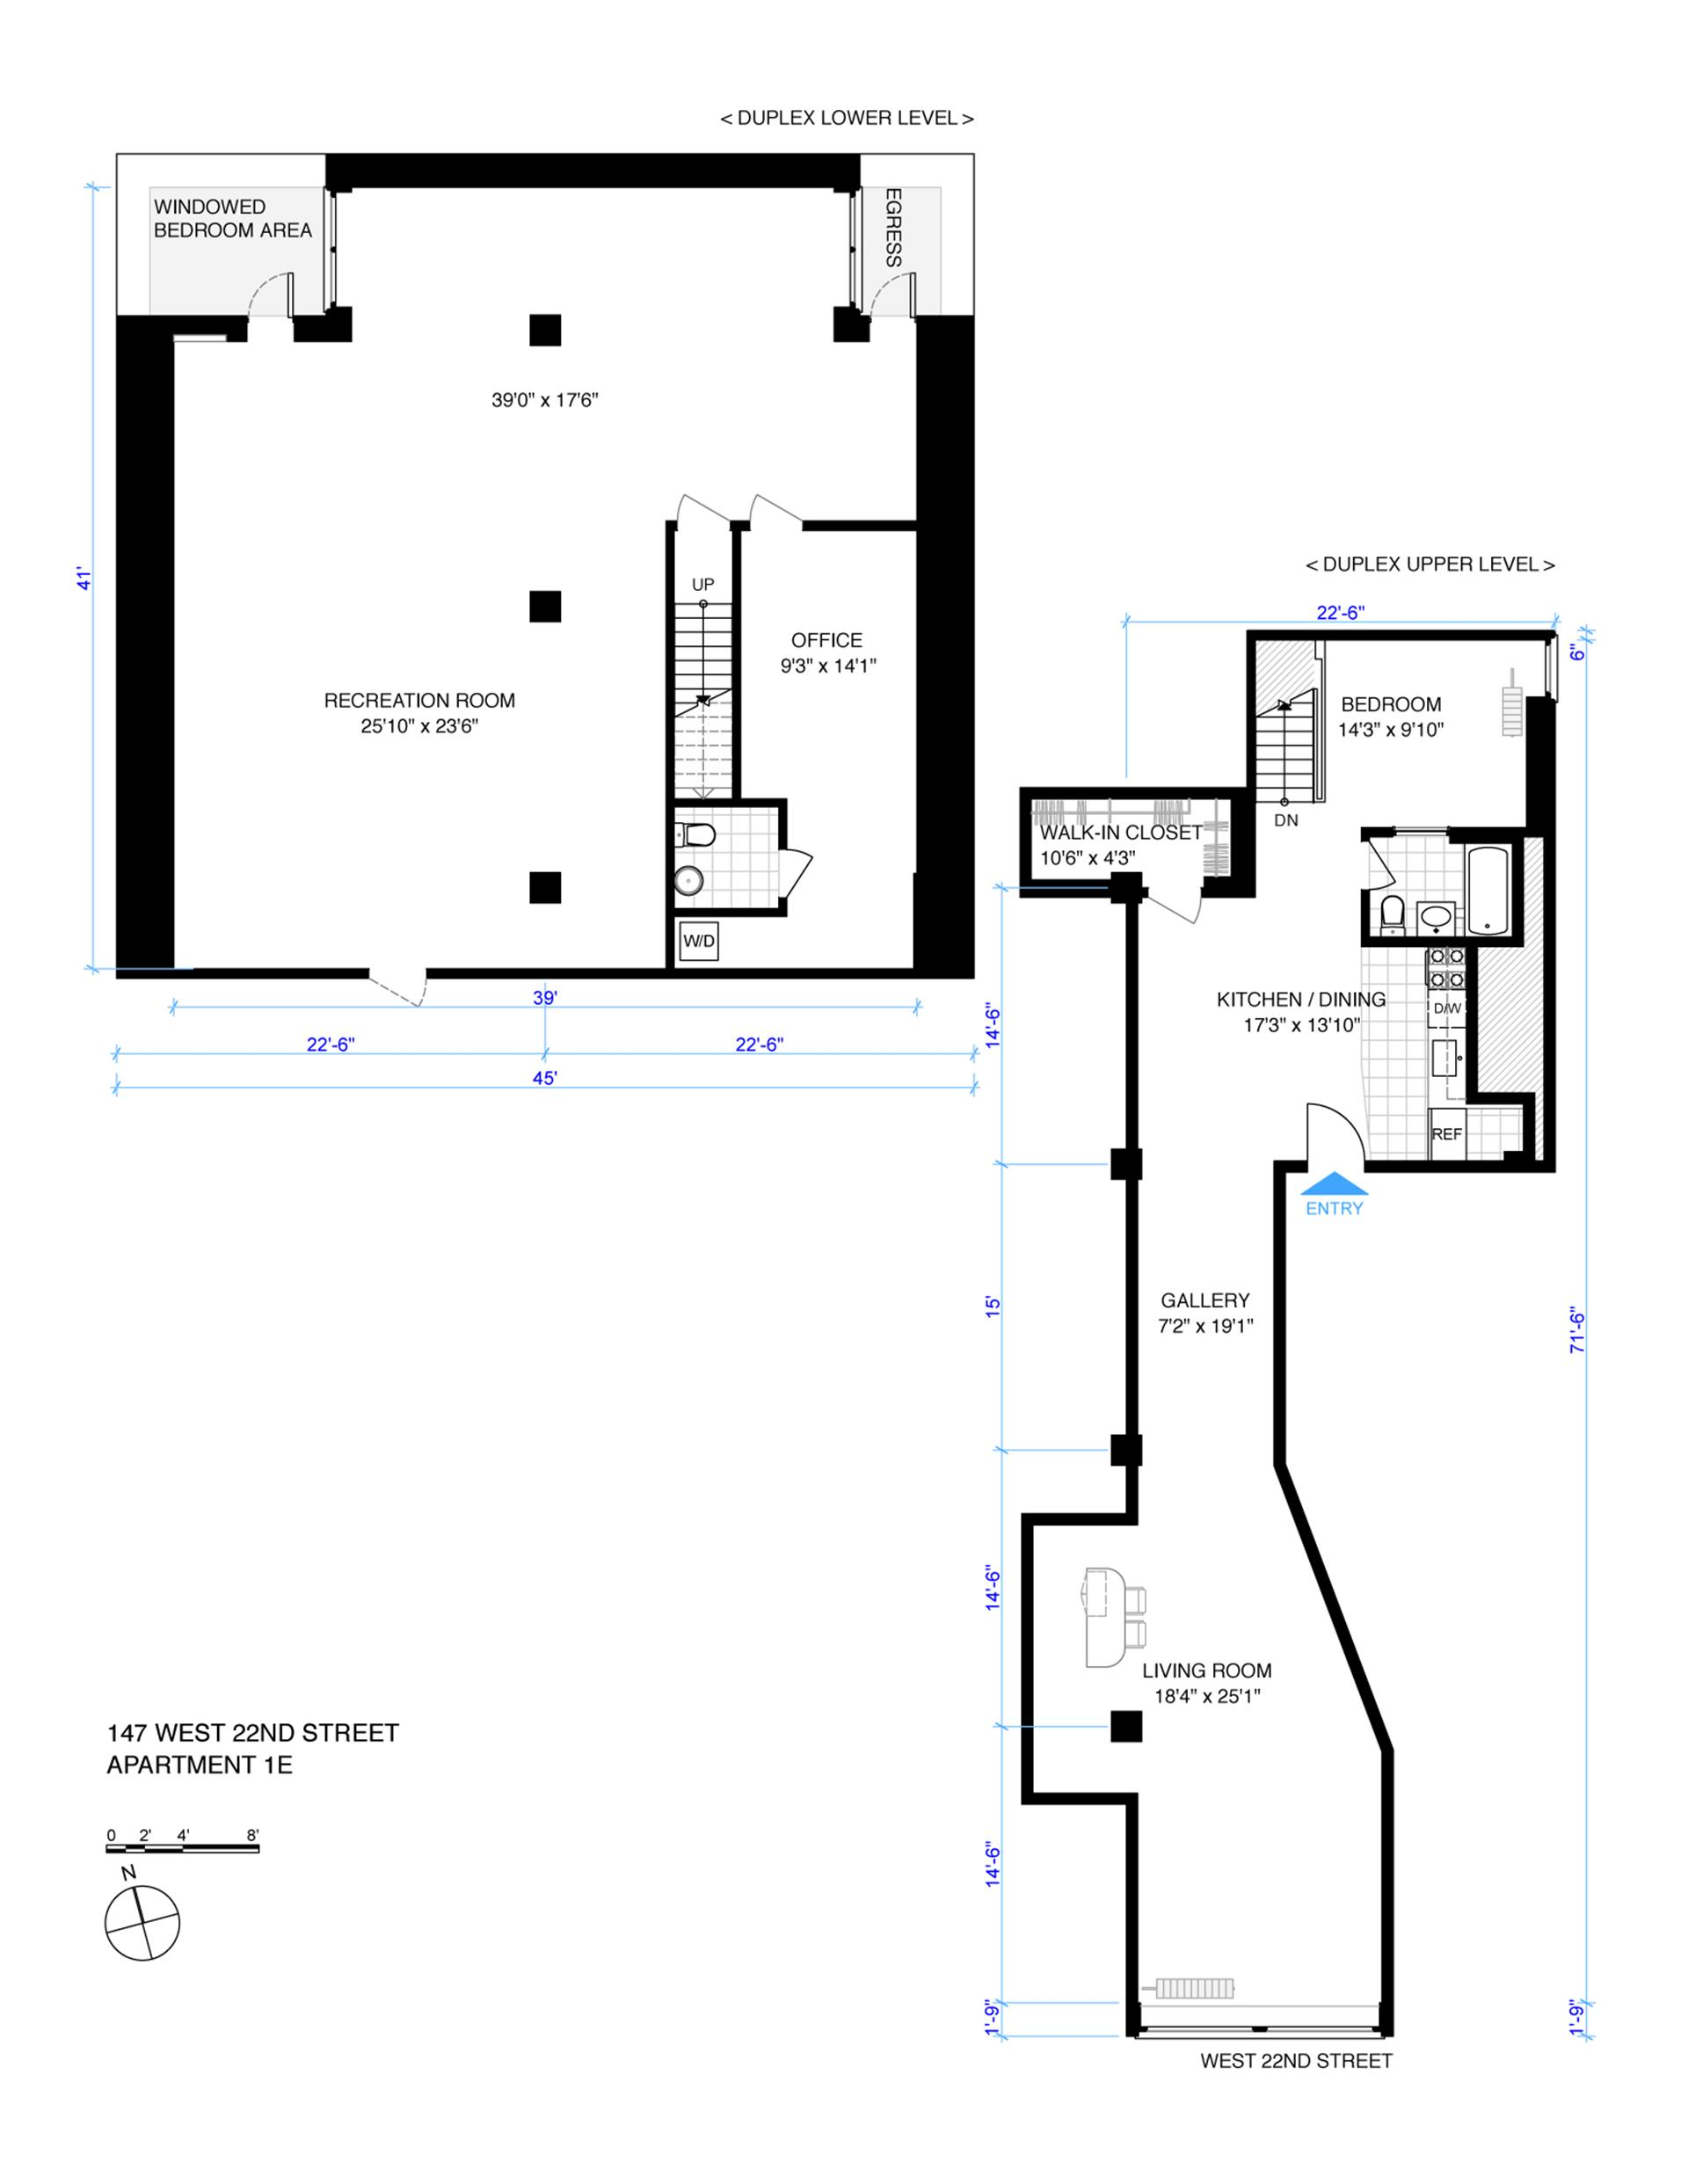 Floor plan of 147 West 22nd St, 1E - Chelsea, New York